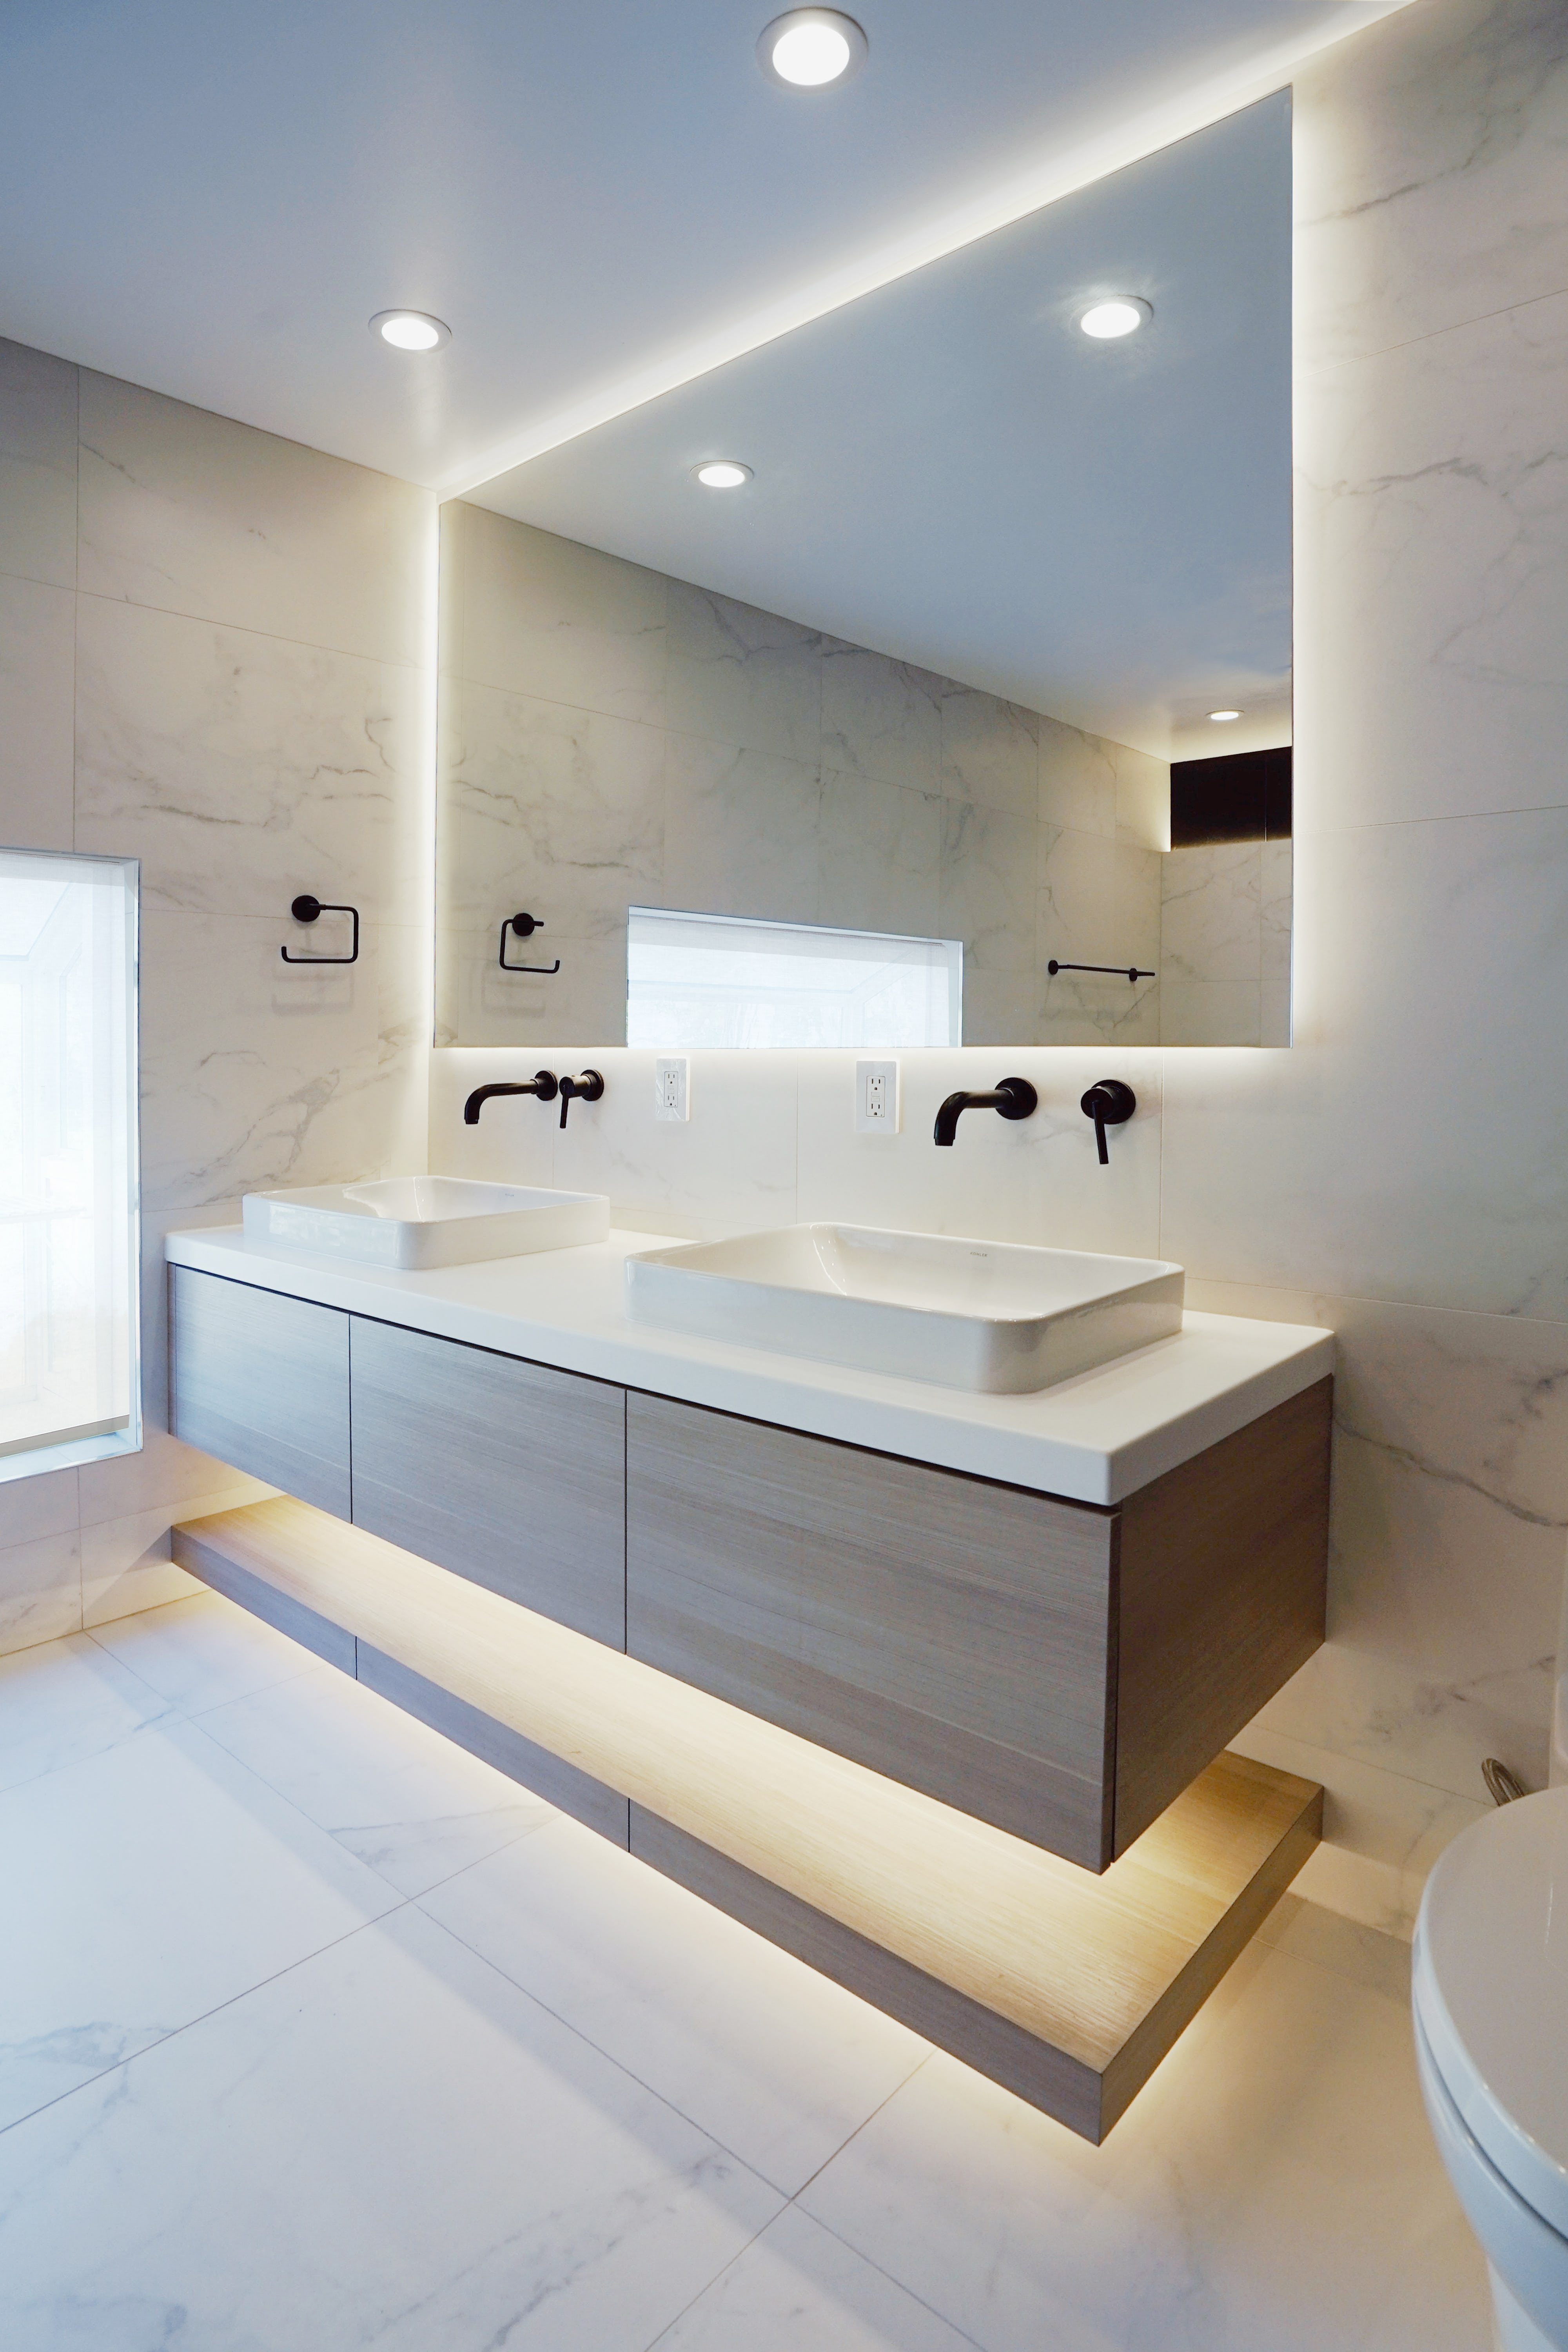 Iso ideas south bay house remodel bathroom 2 shade